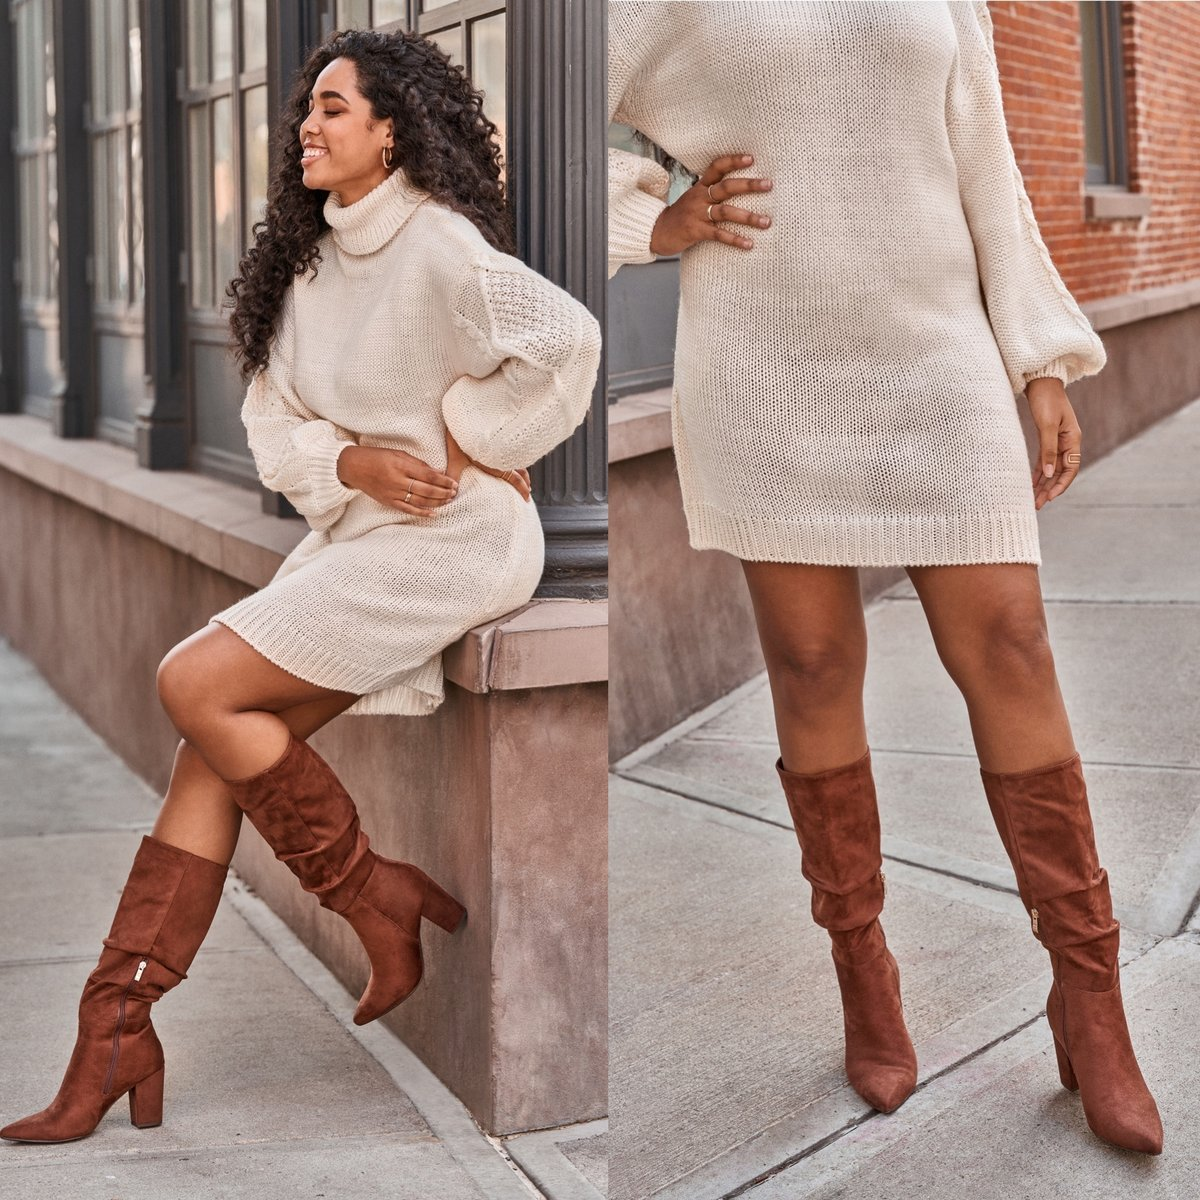 The perfect fall look is just a click away -- Shop here: https://t.co/29lLH02zY5 https://t.co/go0zlXisWL